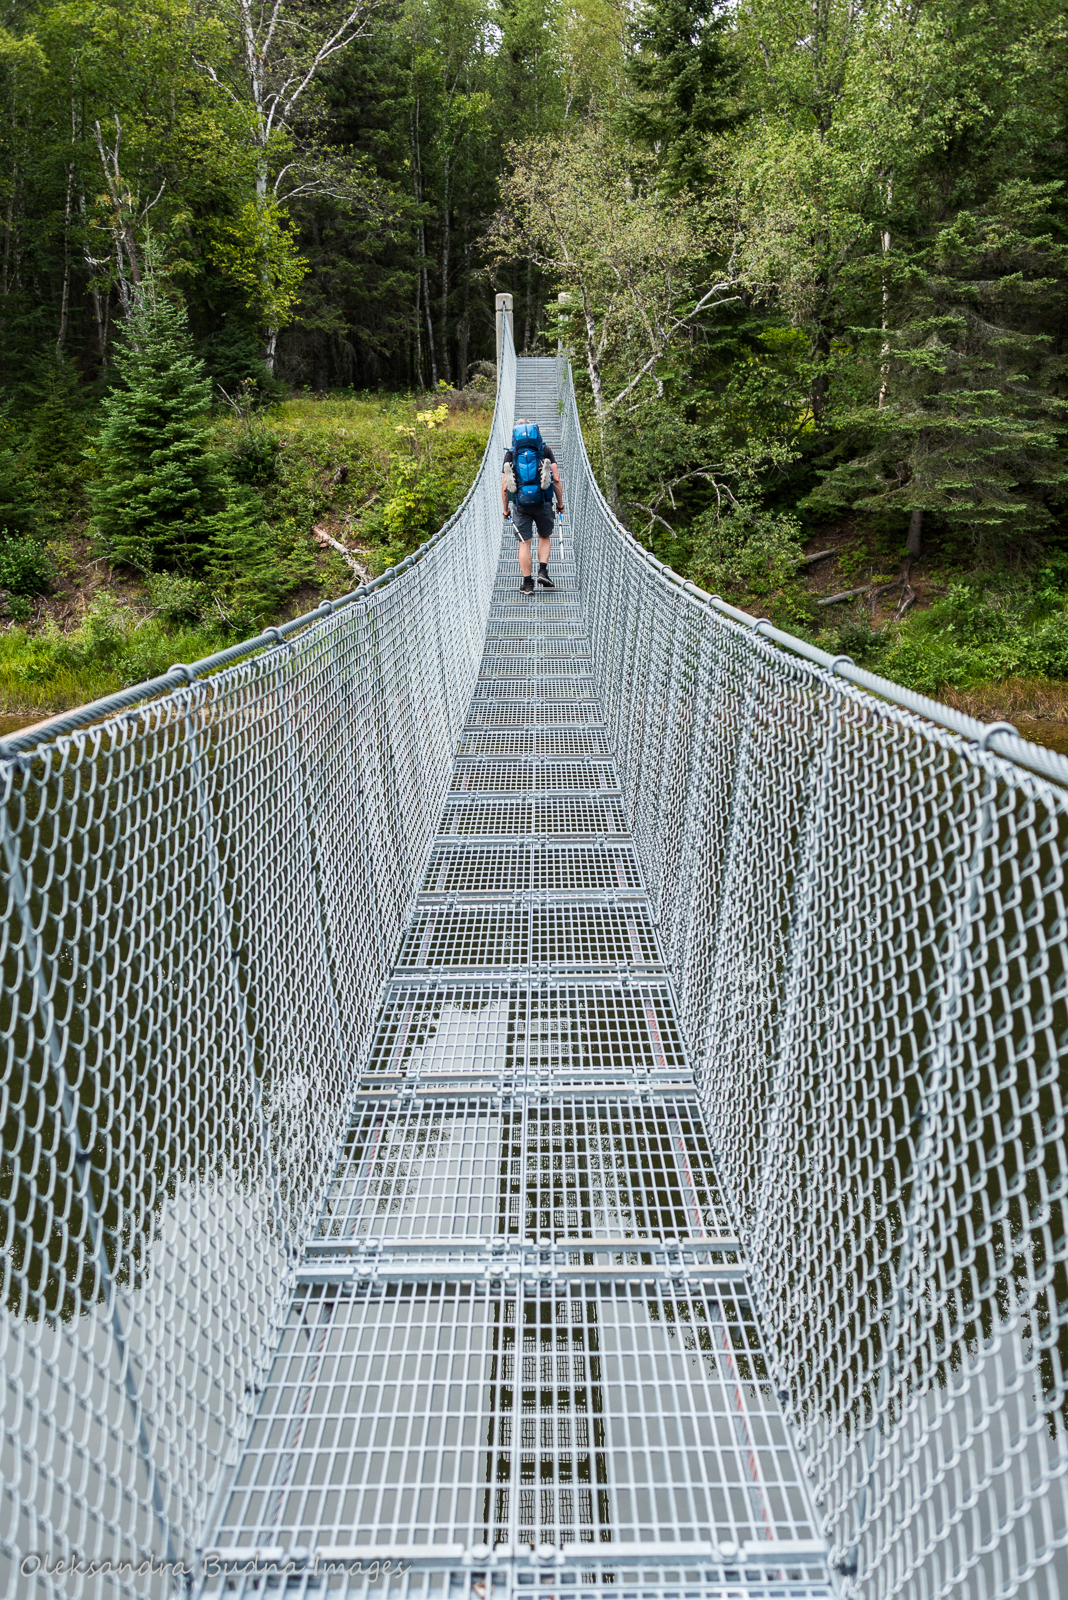 Crossing suspension bridge over Willow River while backpacking in Pukaskwa